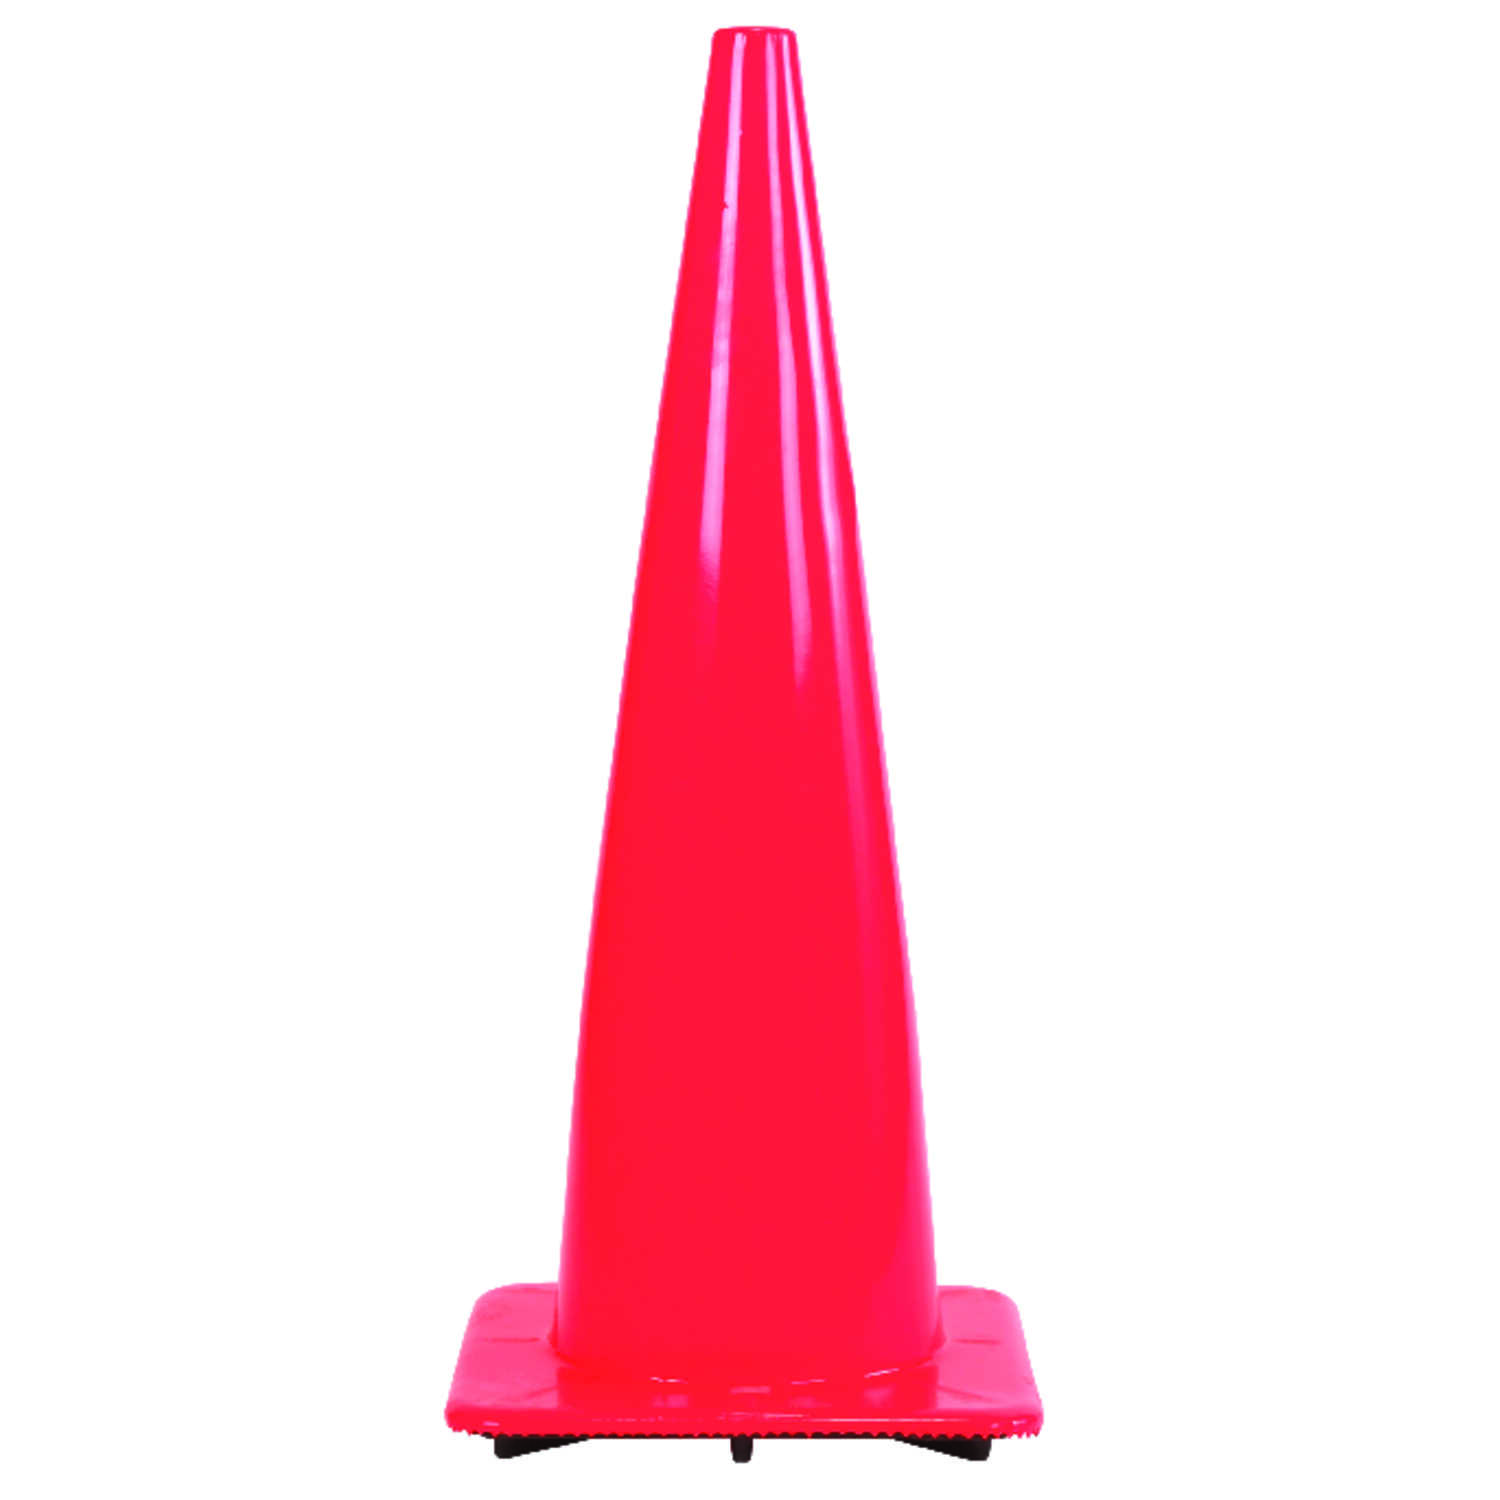 Hy-Ko  36 in. Round  Orange  Safety Cone  1 pk